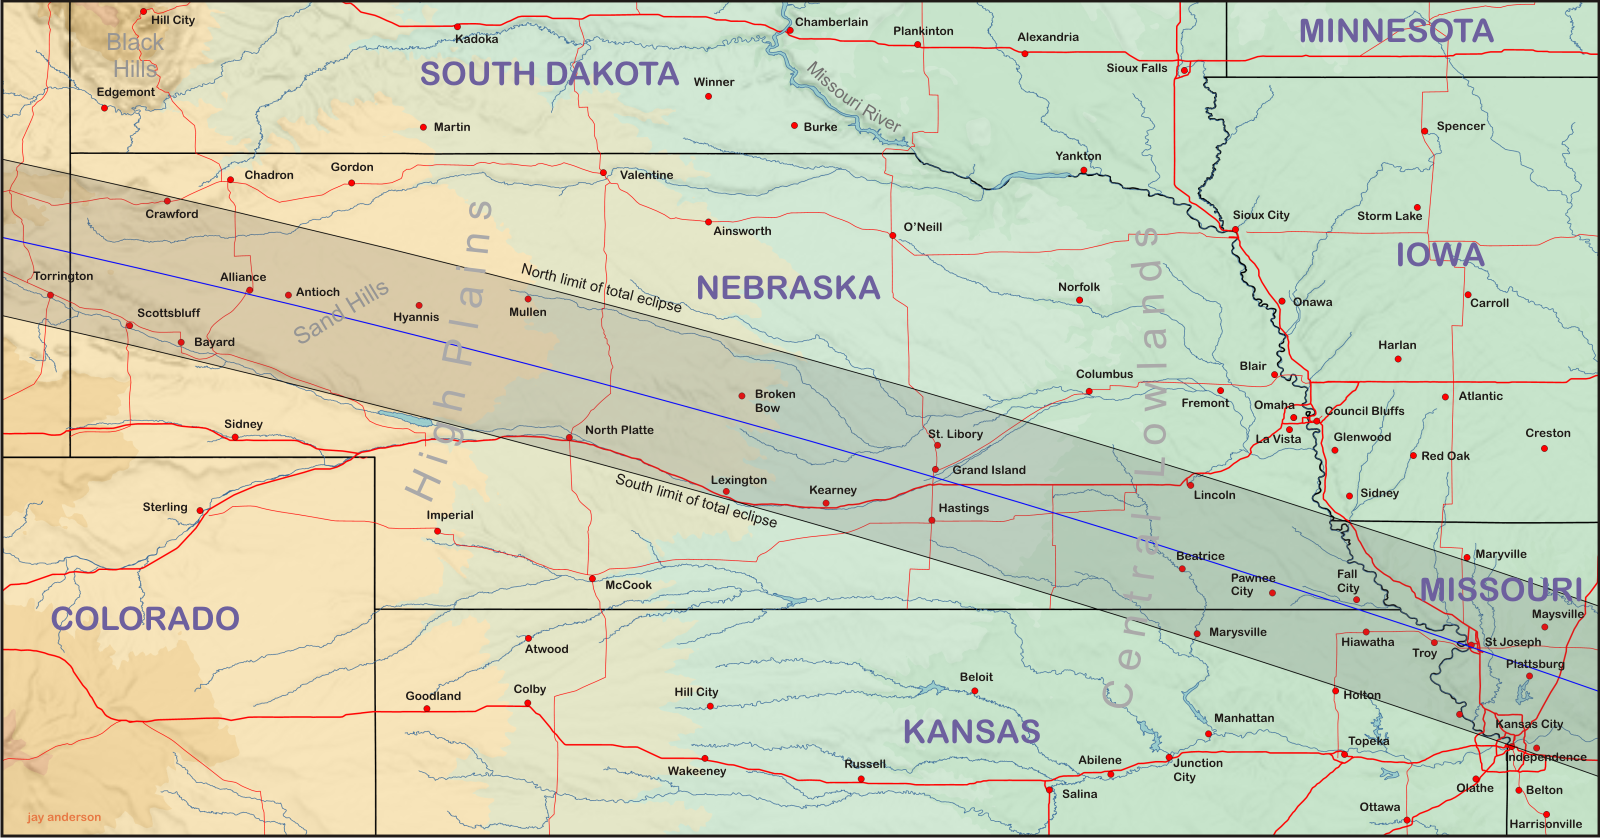 Nebraska and Kansas | Eclipsophile